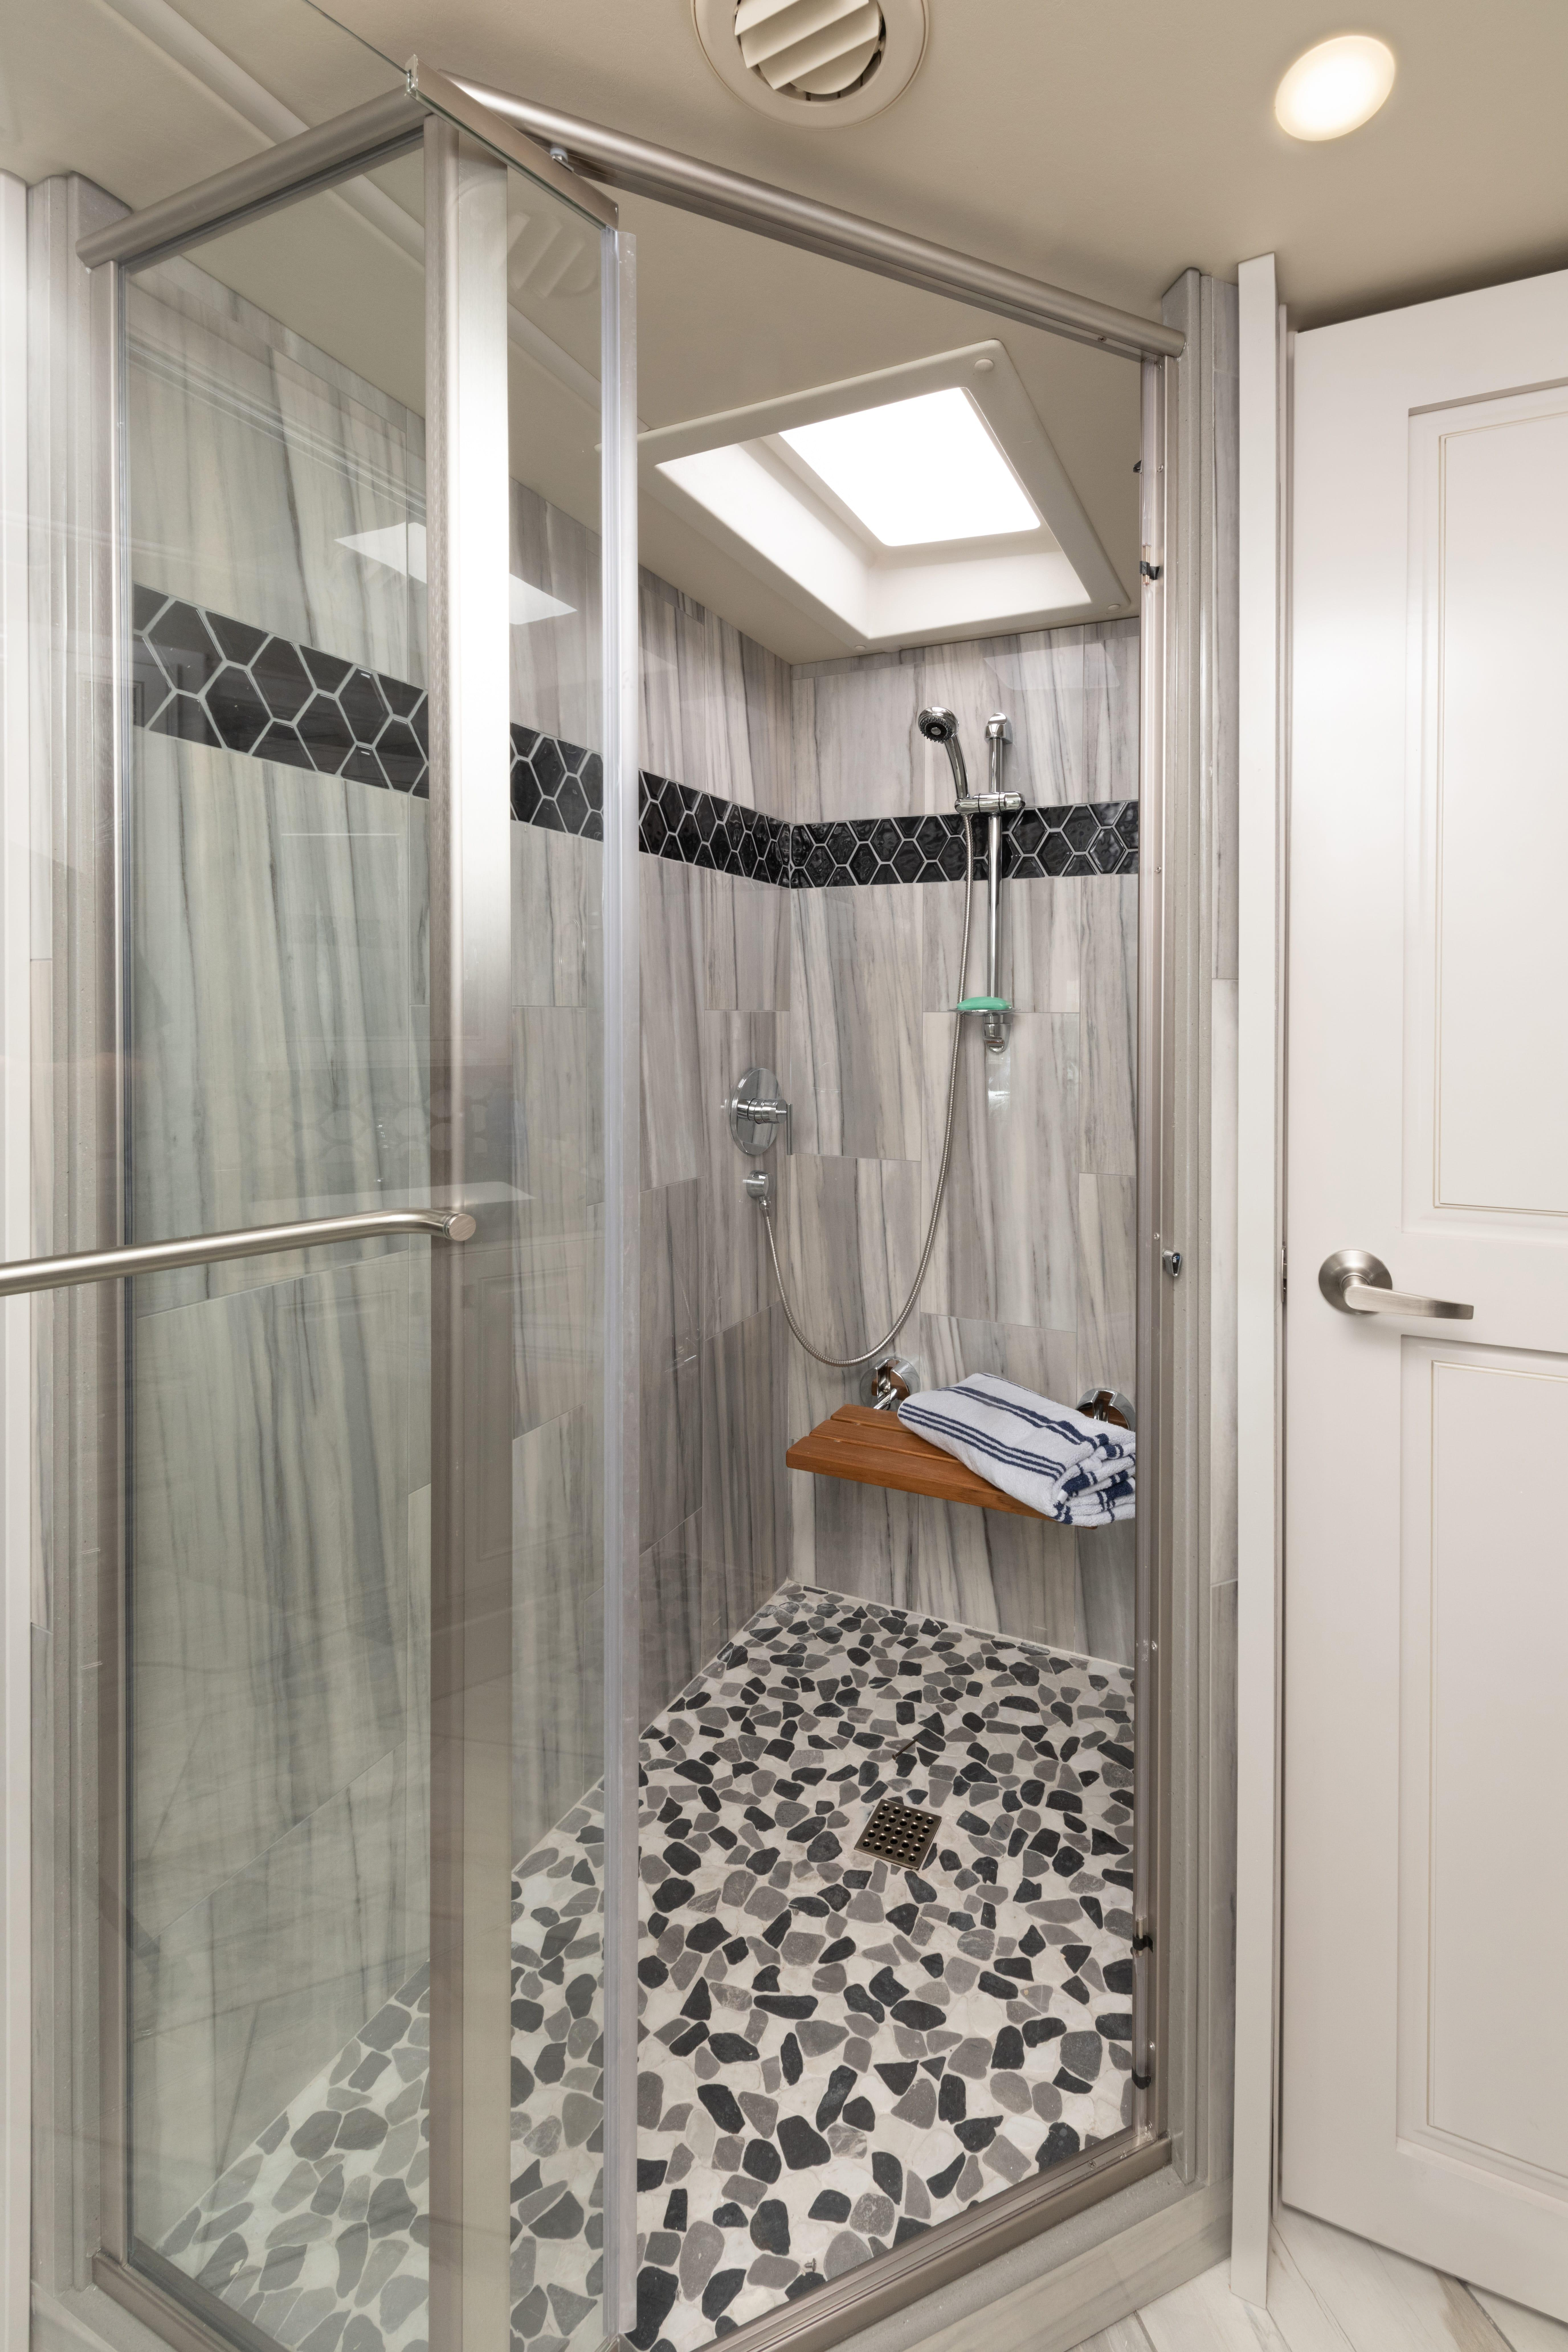 21 shower Discovery LXE44 S sign WF MY22 2557